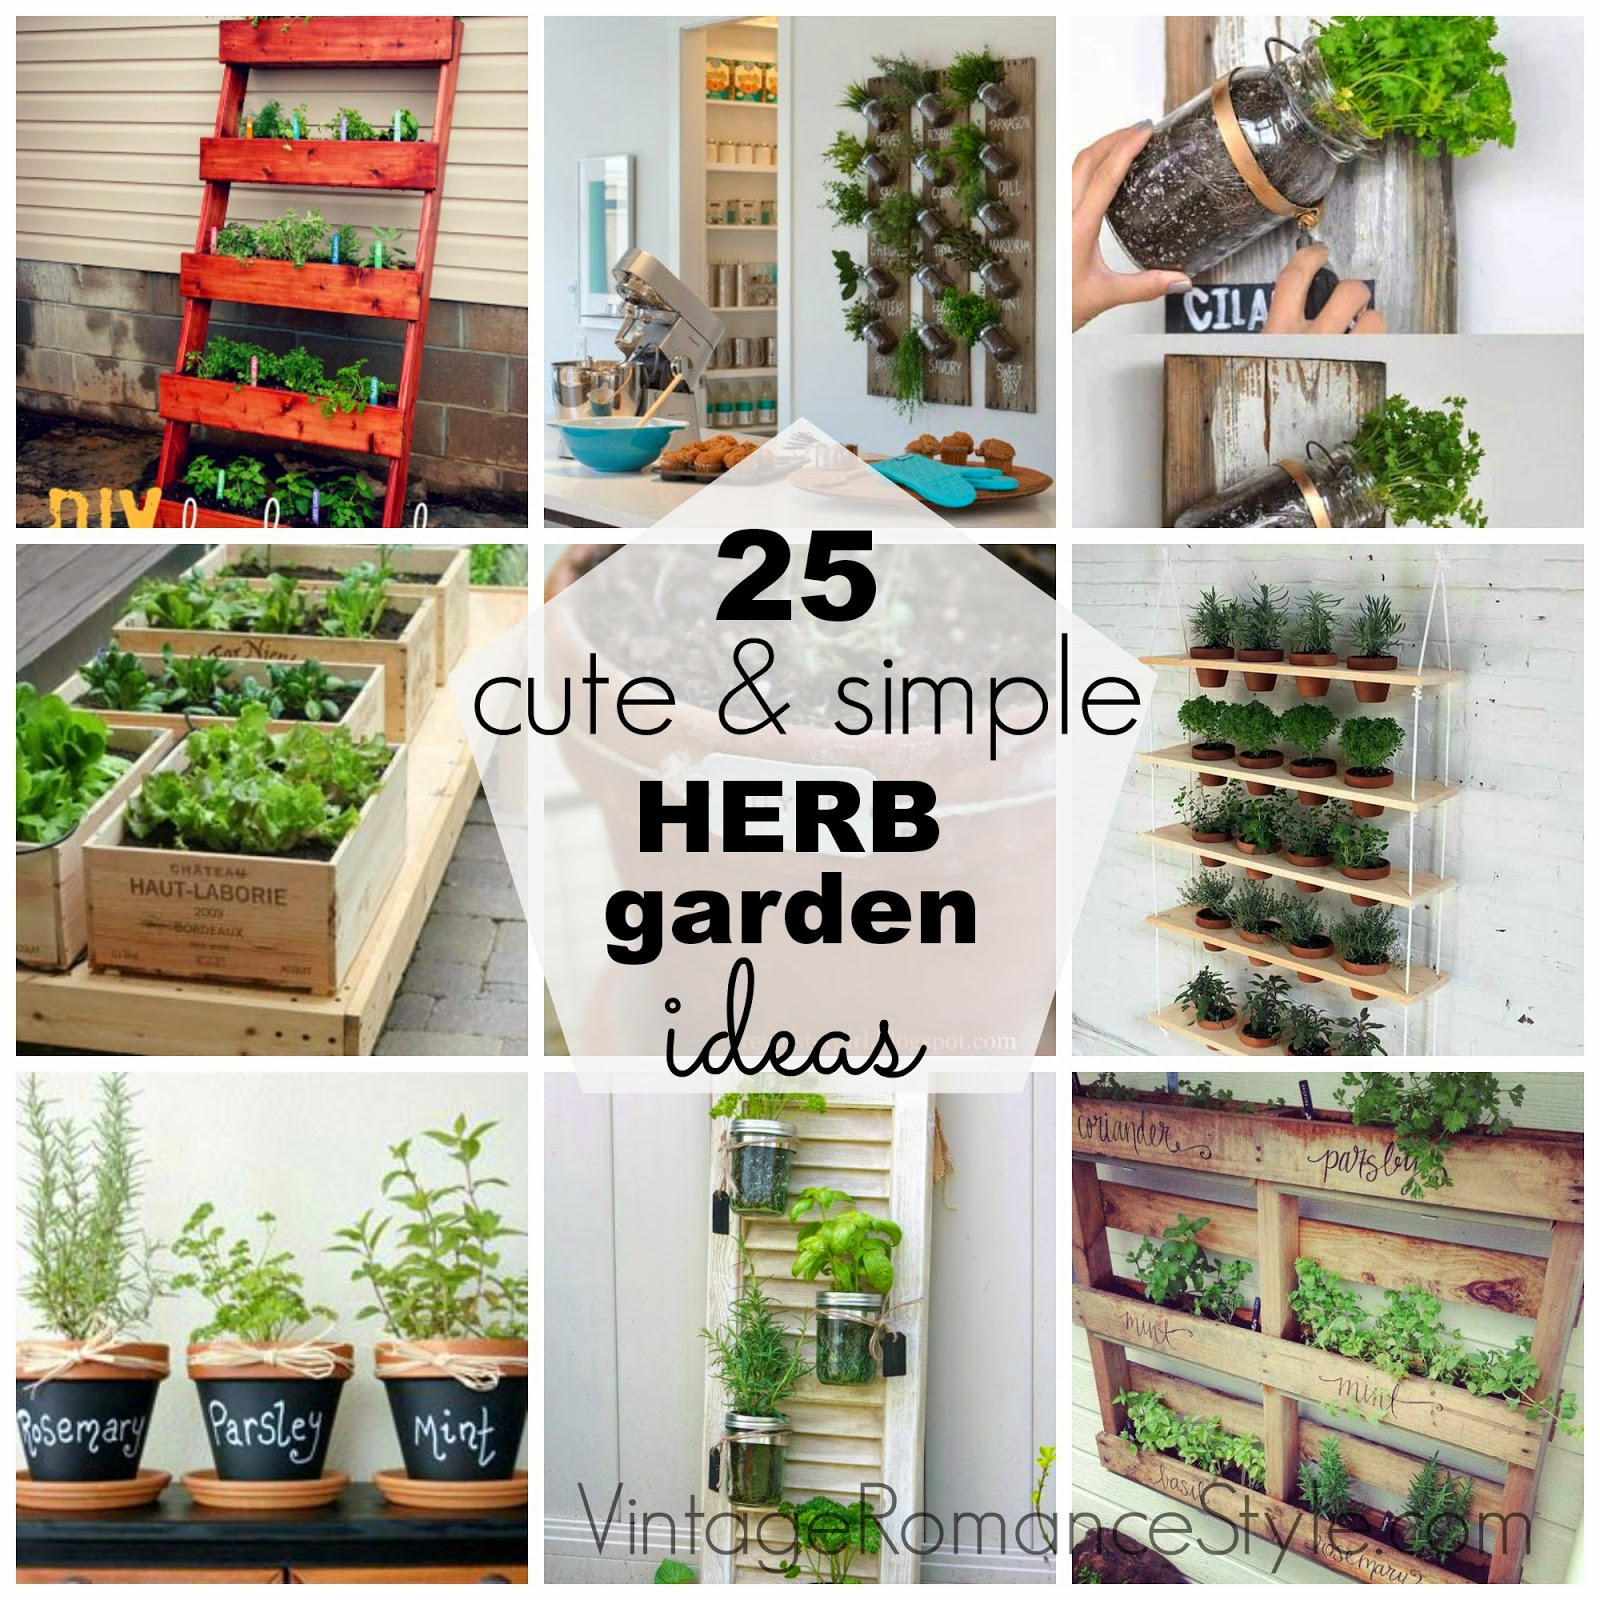 25 cute simple herb garden ideas